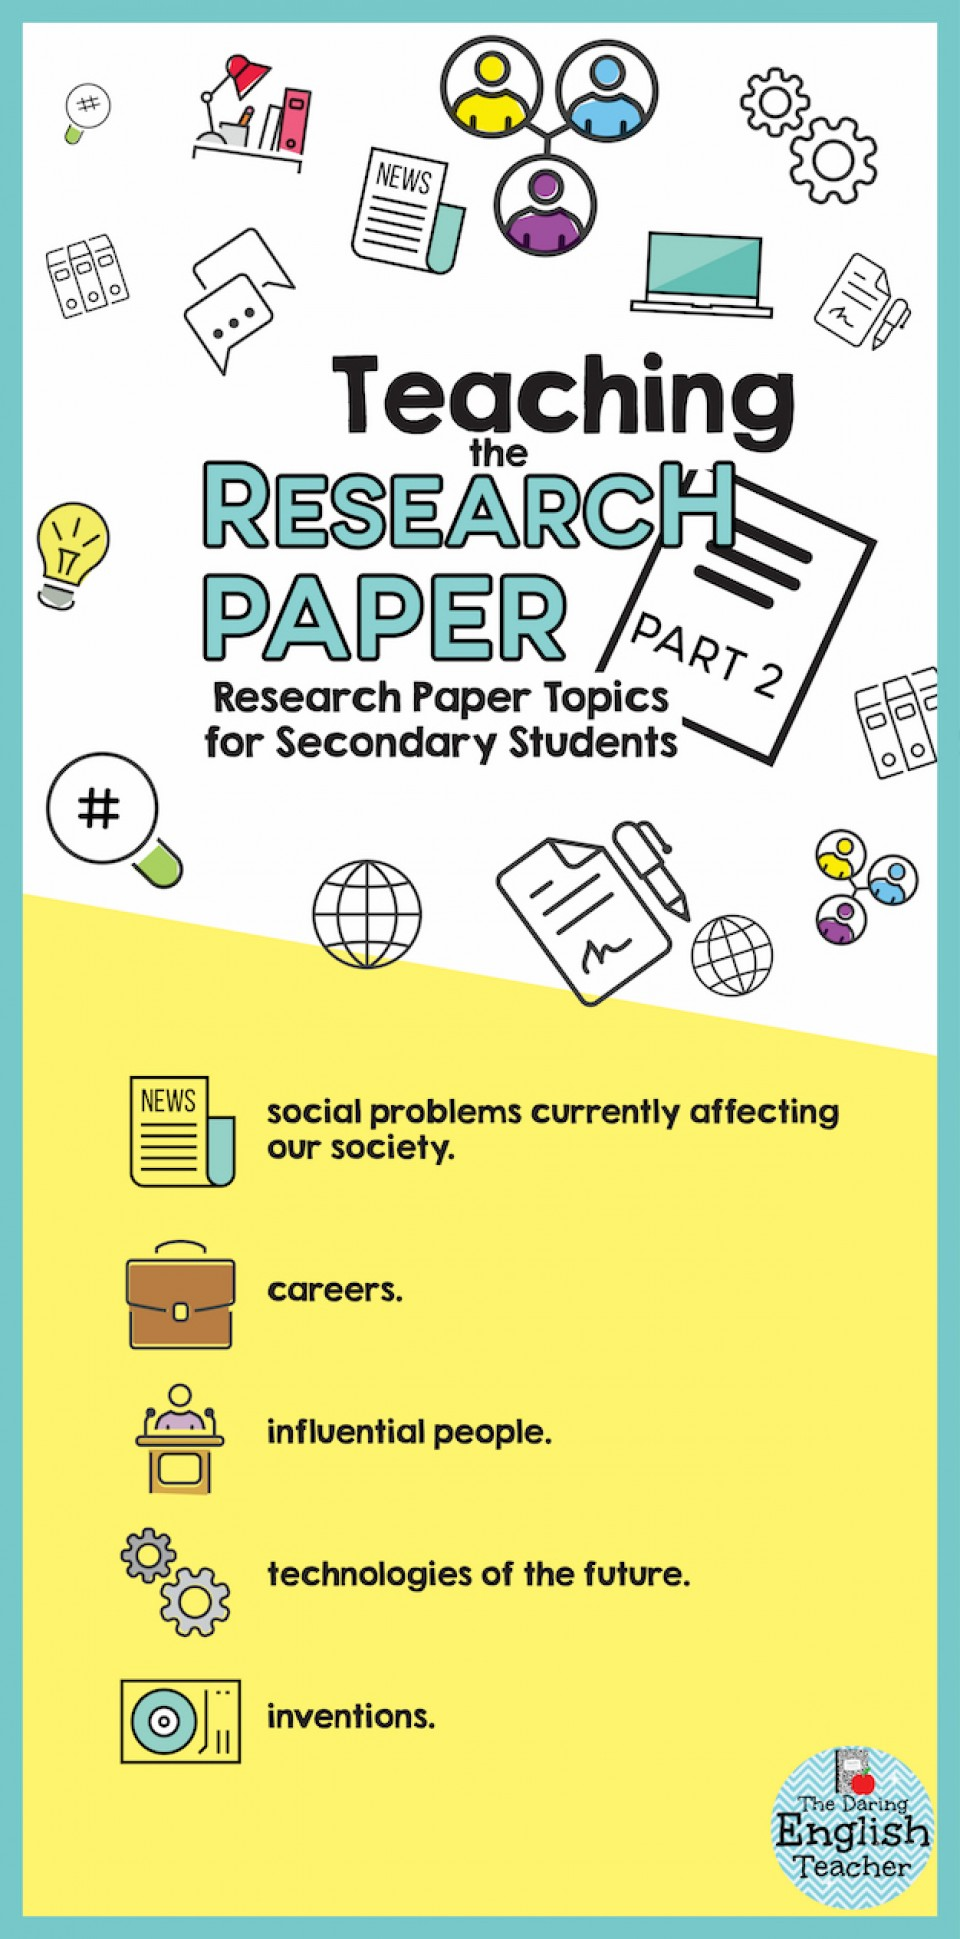 020 Infographic2bp22b2 Research Paper Topic For Unusual A Topics On Education Best High School Papers Business Management 960